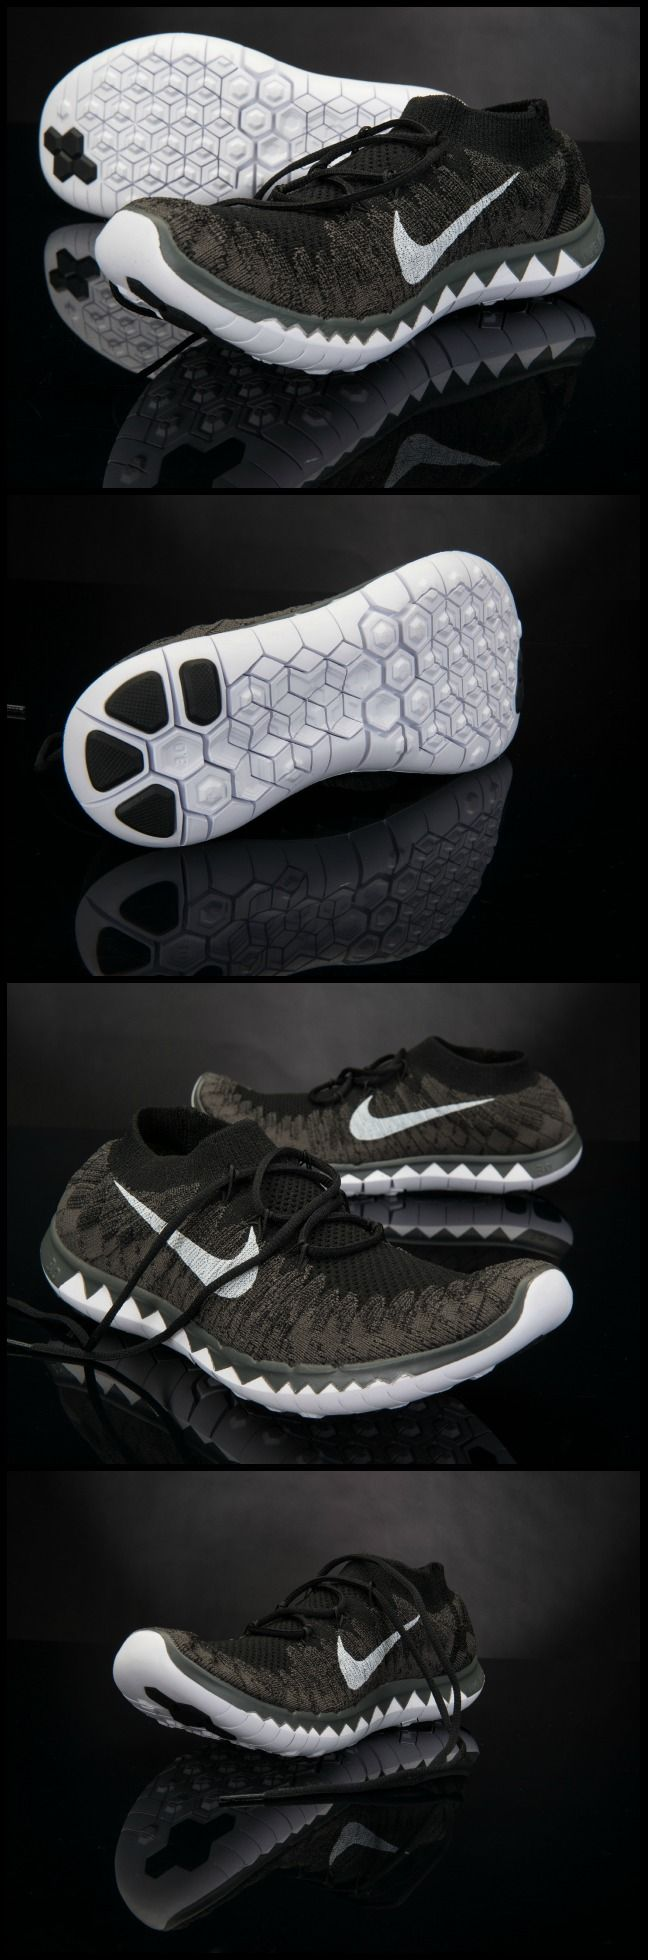 low priced 28953 00740 clearance eastbay nike free 3.0 c672f 6322d